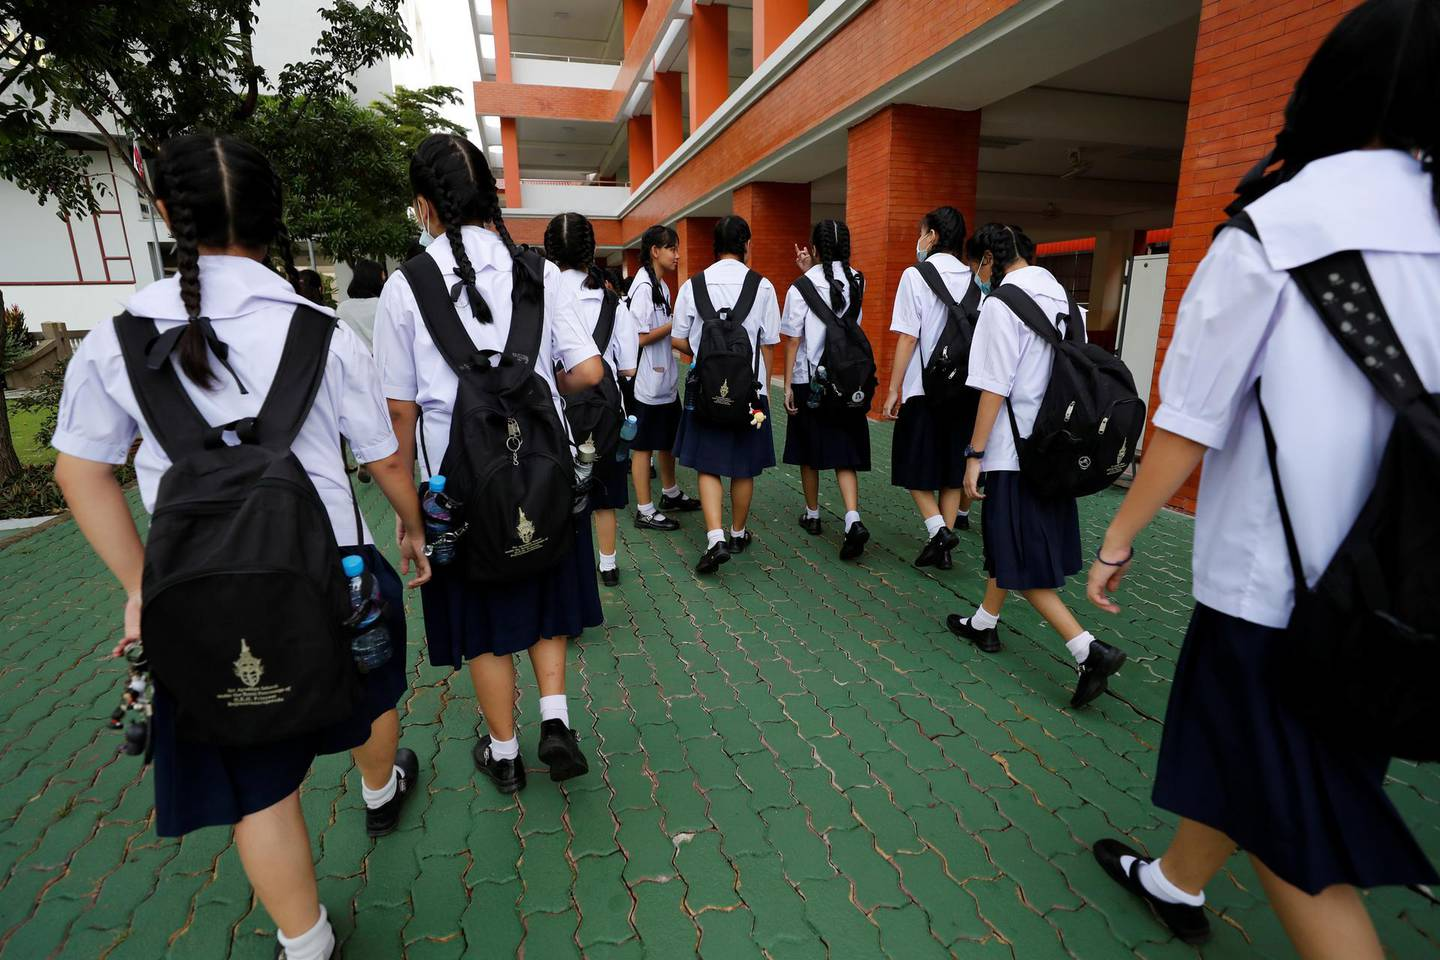 Girls walk to their classrooms before the start of their lesson day in Bangkok, Thailand September 15, 2020. Picture taken September 15, 2020. REUTERS/Jorge Silva